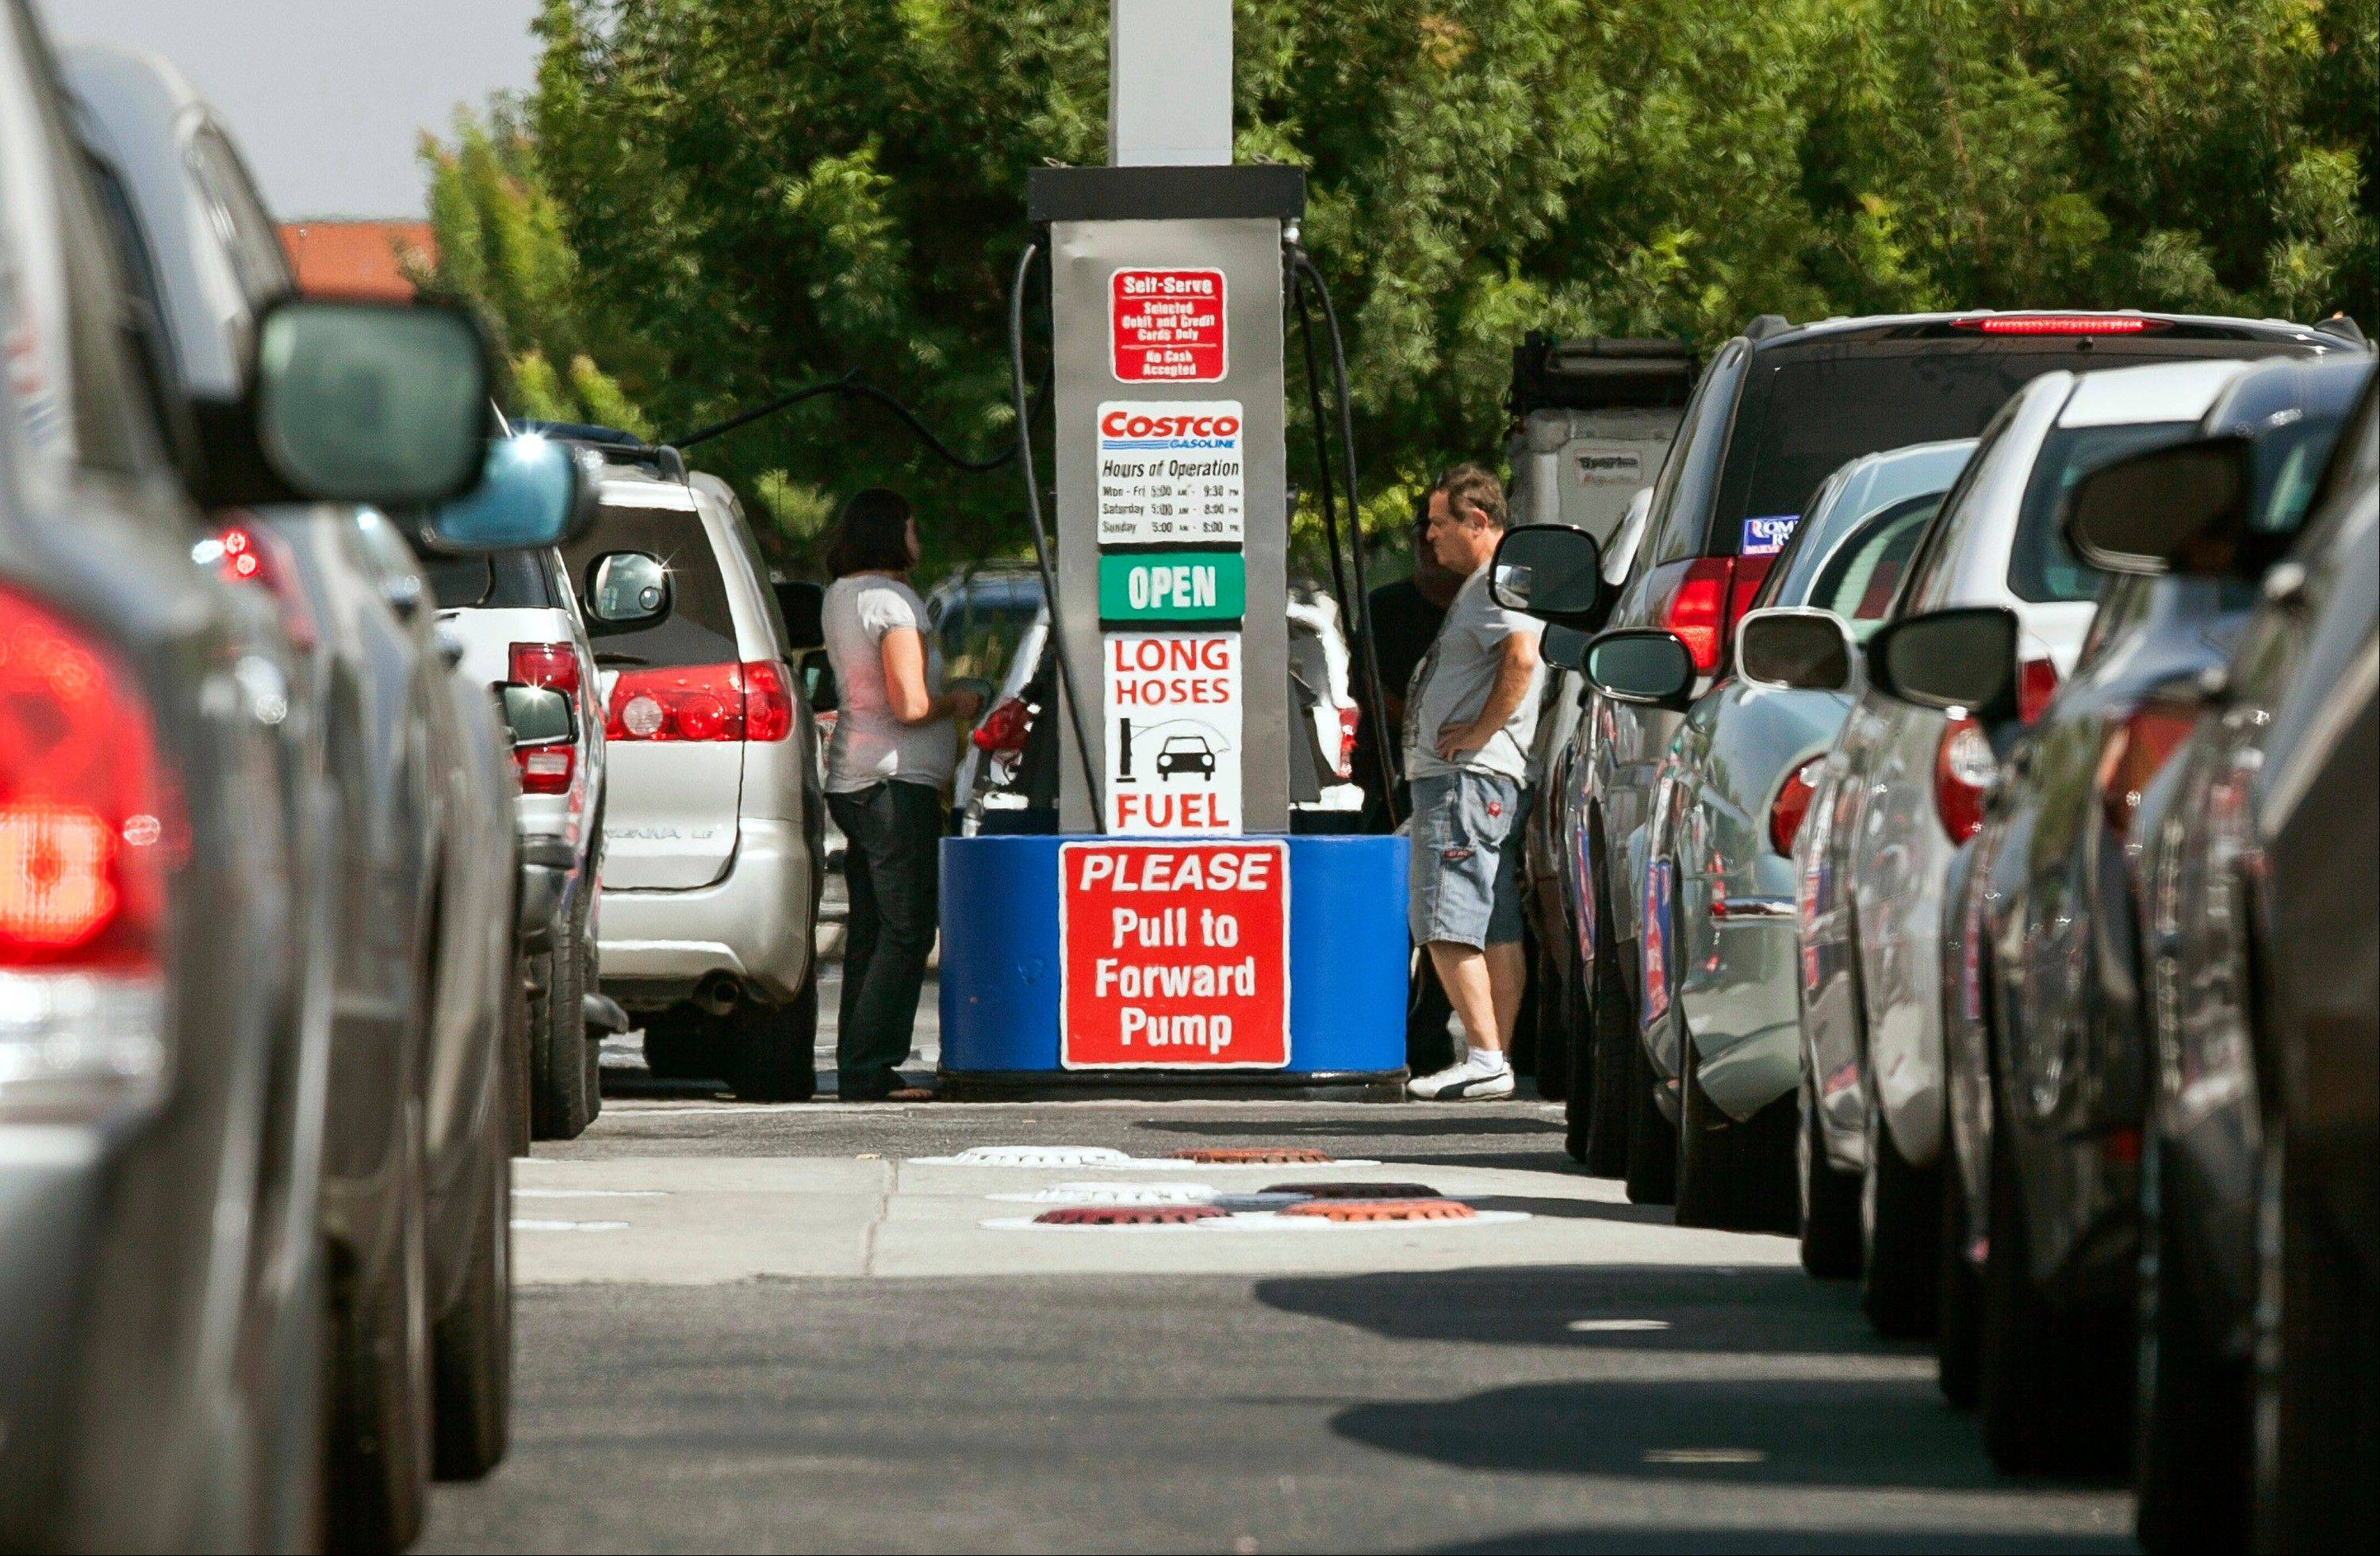 Costco members fill up with discounted gasoline at a Costco gas station in Van Nuys, Calif., Friday. Californians woke up to a shock Friday as overnight gasoline prices jumped by as much as 20 cents a gallon in some areas.